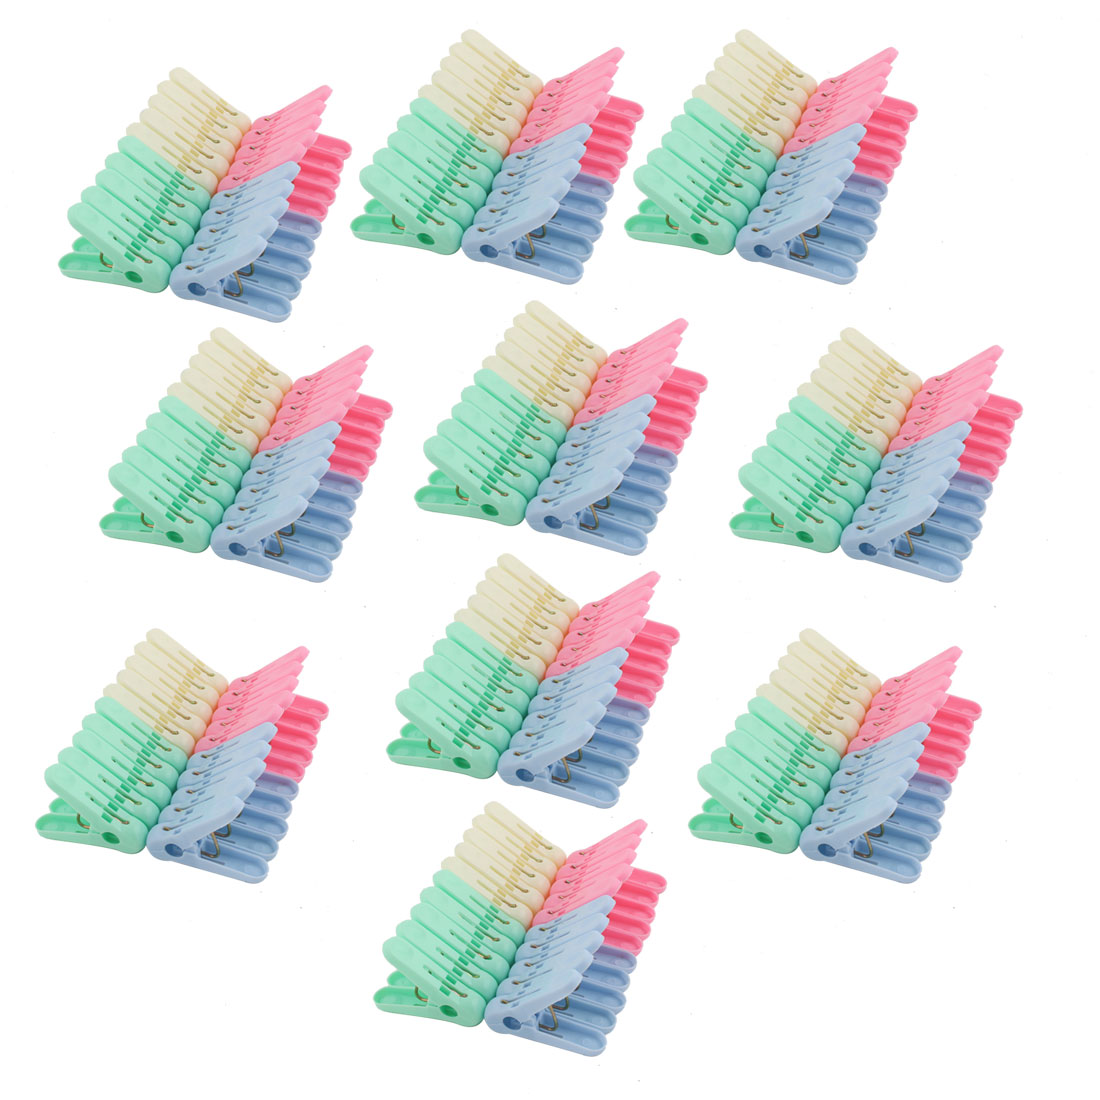 Unique Bargains Household Plastic Socks Towel Bag Clothing Clothes Clips Clamp Clothespin 200pcs